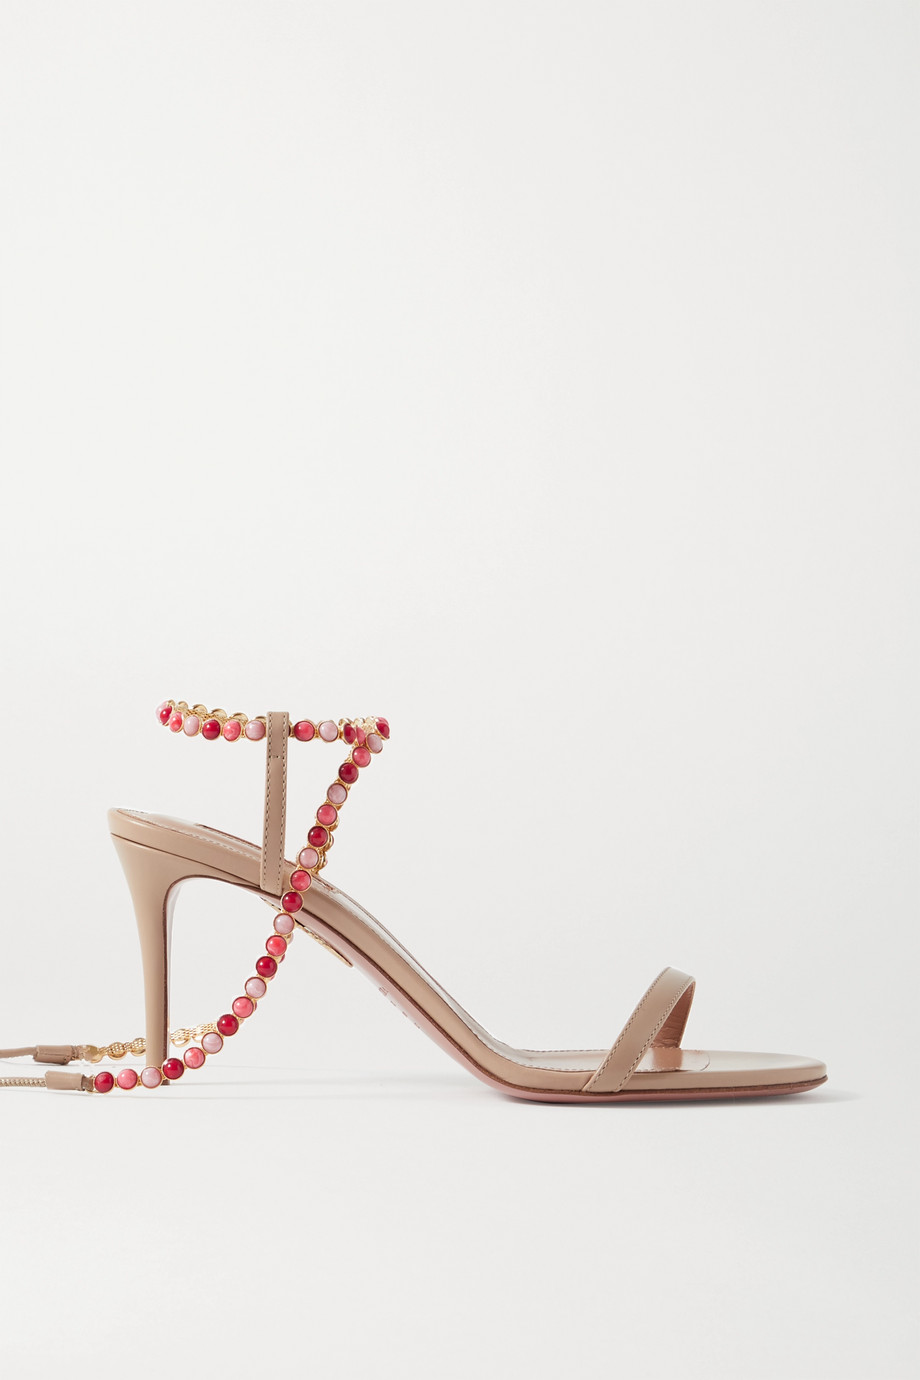 Aquazzura Livia 75 beaded leather sandals